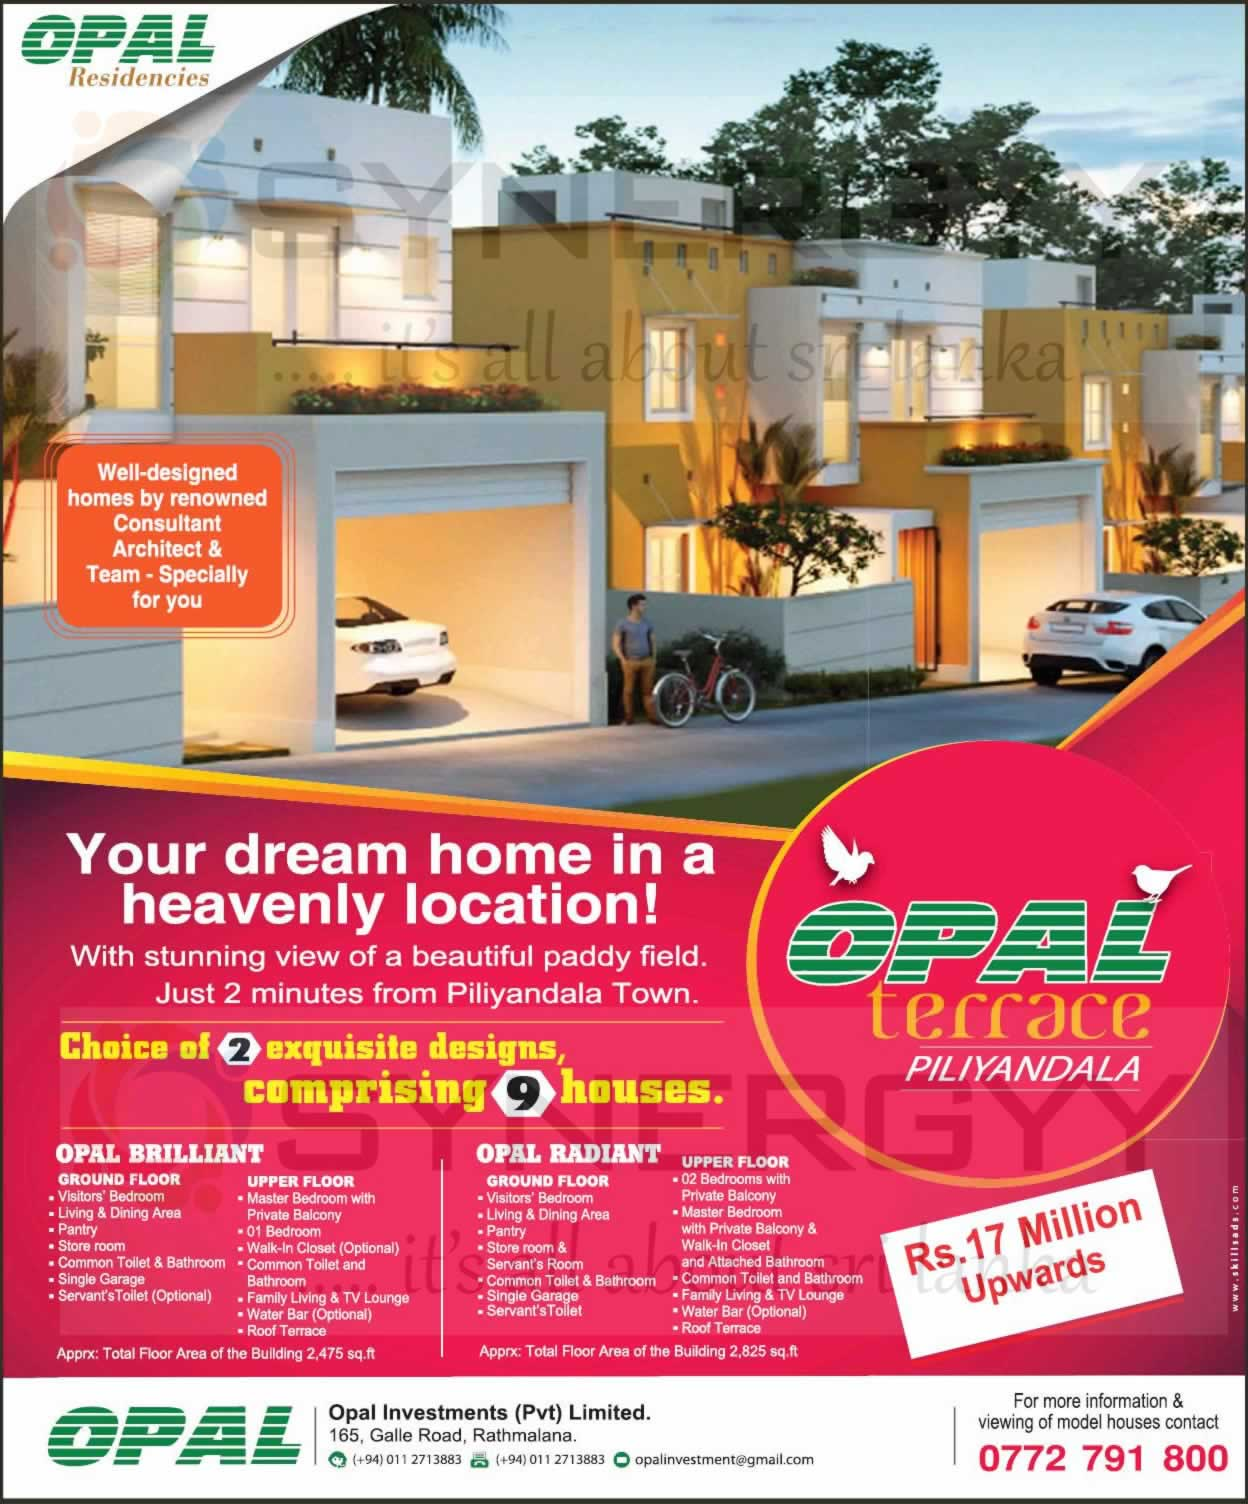 2500 sq ft house for rs 17 million upwards from opal